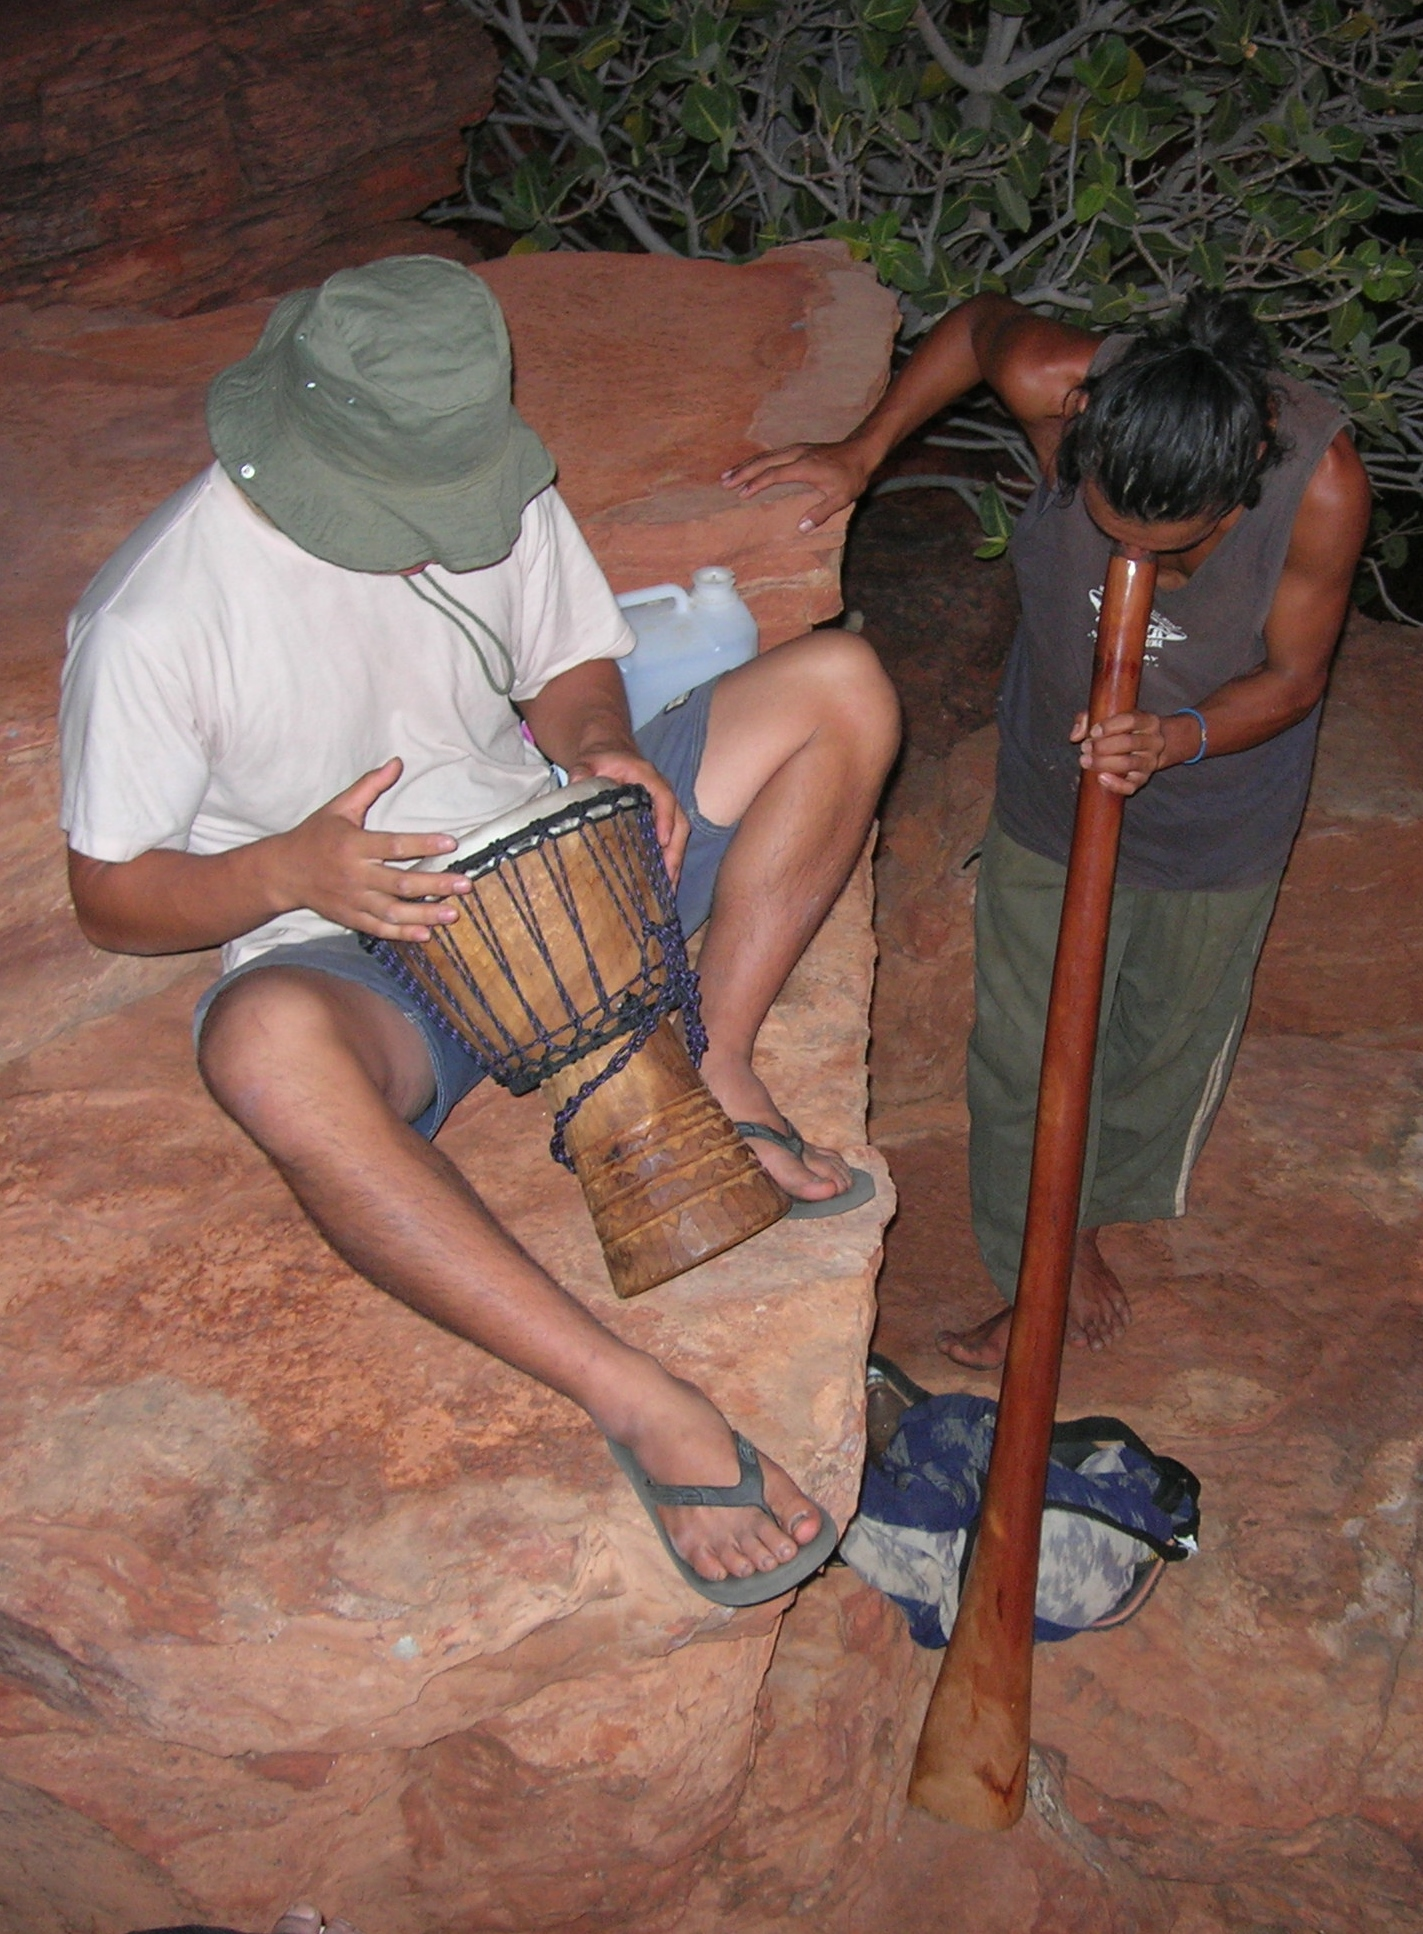 Make time to make music. The guy on the right got up at 4 am to play his dig at sunrise. The Digeridoo also vibrates your body on a sub atomic level which helps to relax.